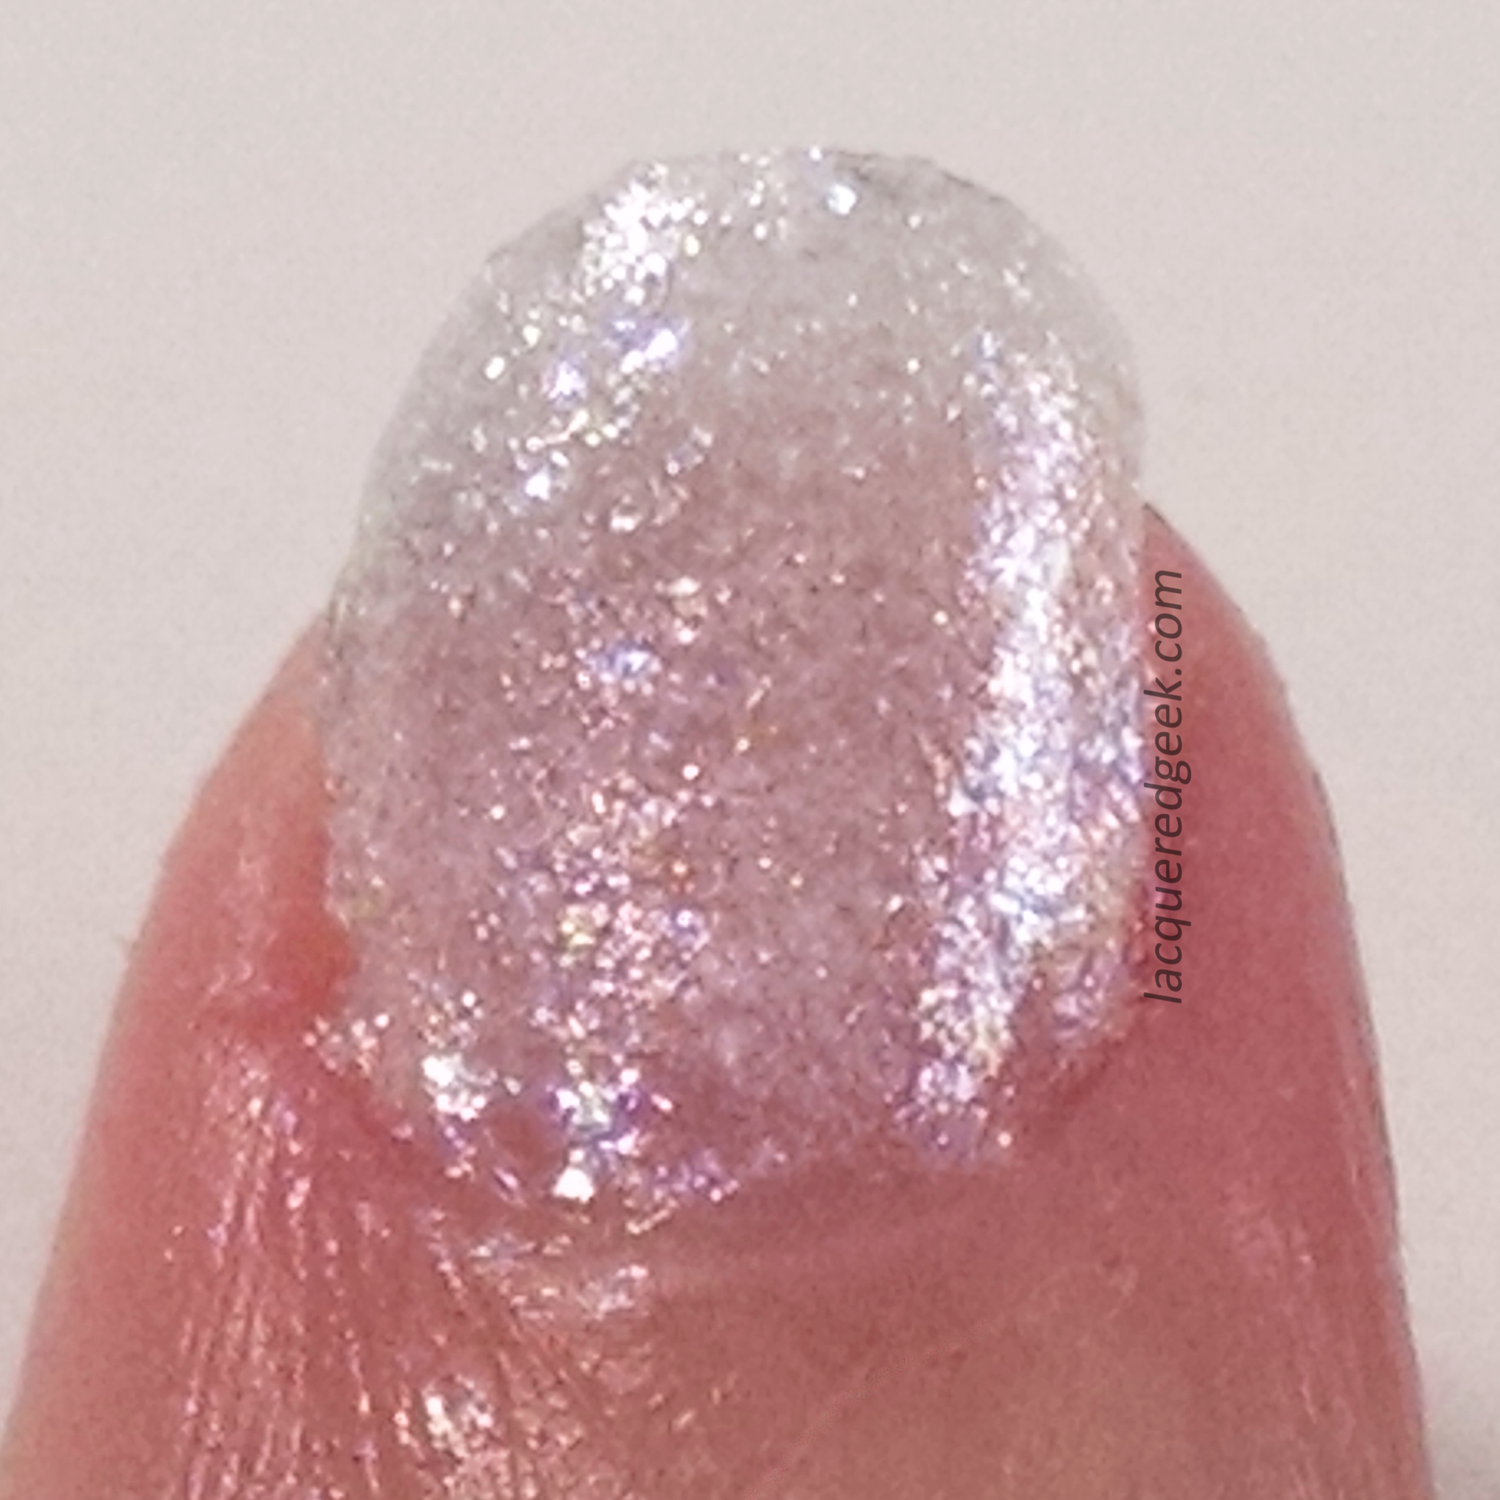 Digital Nails: Special Snowflake swatch